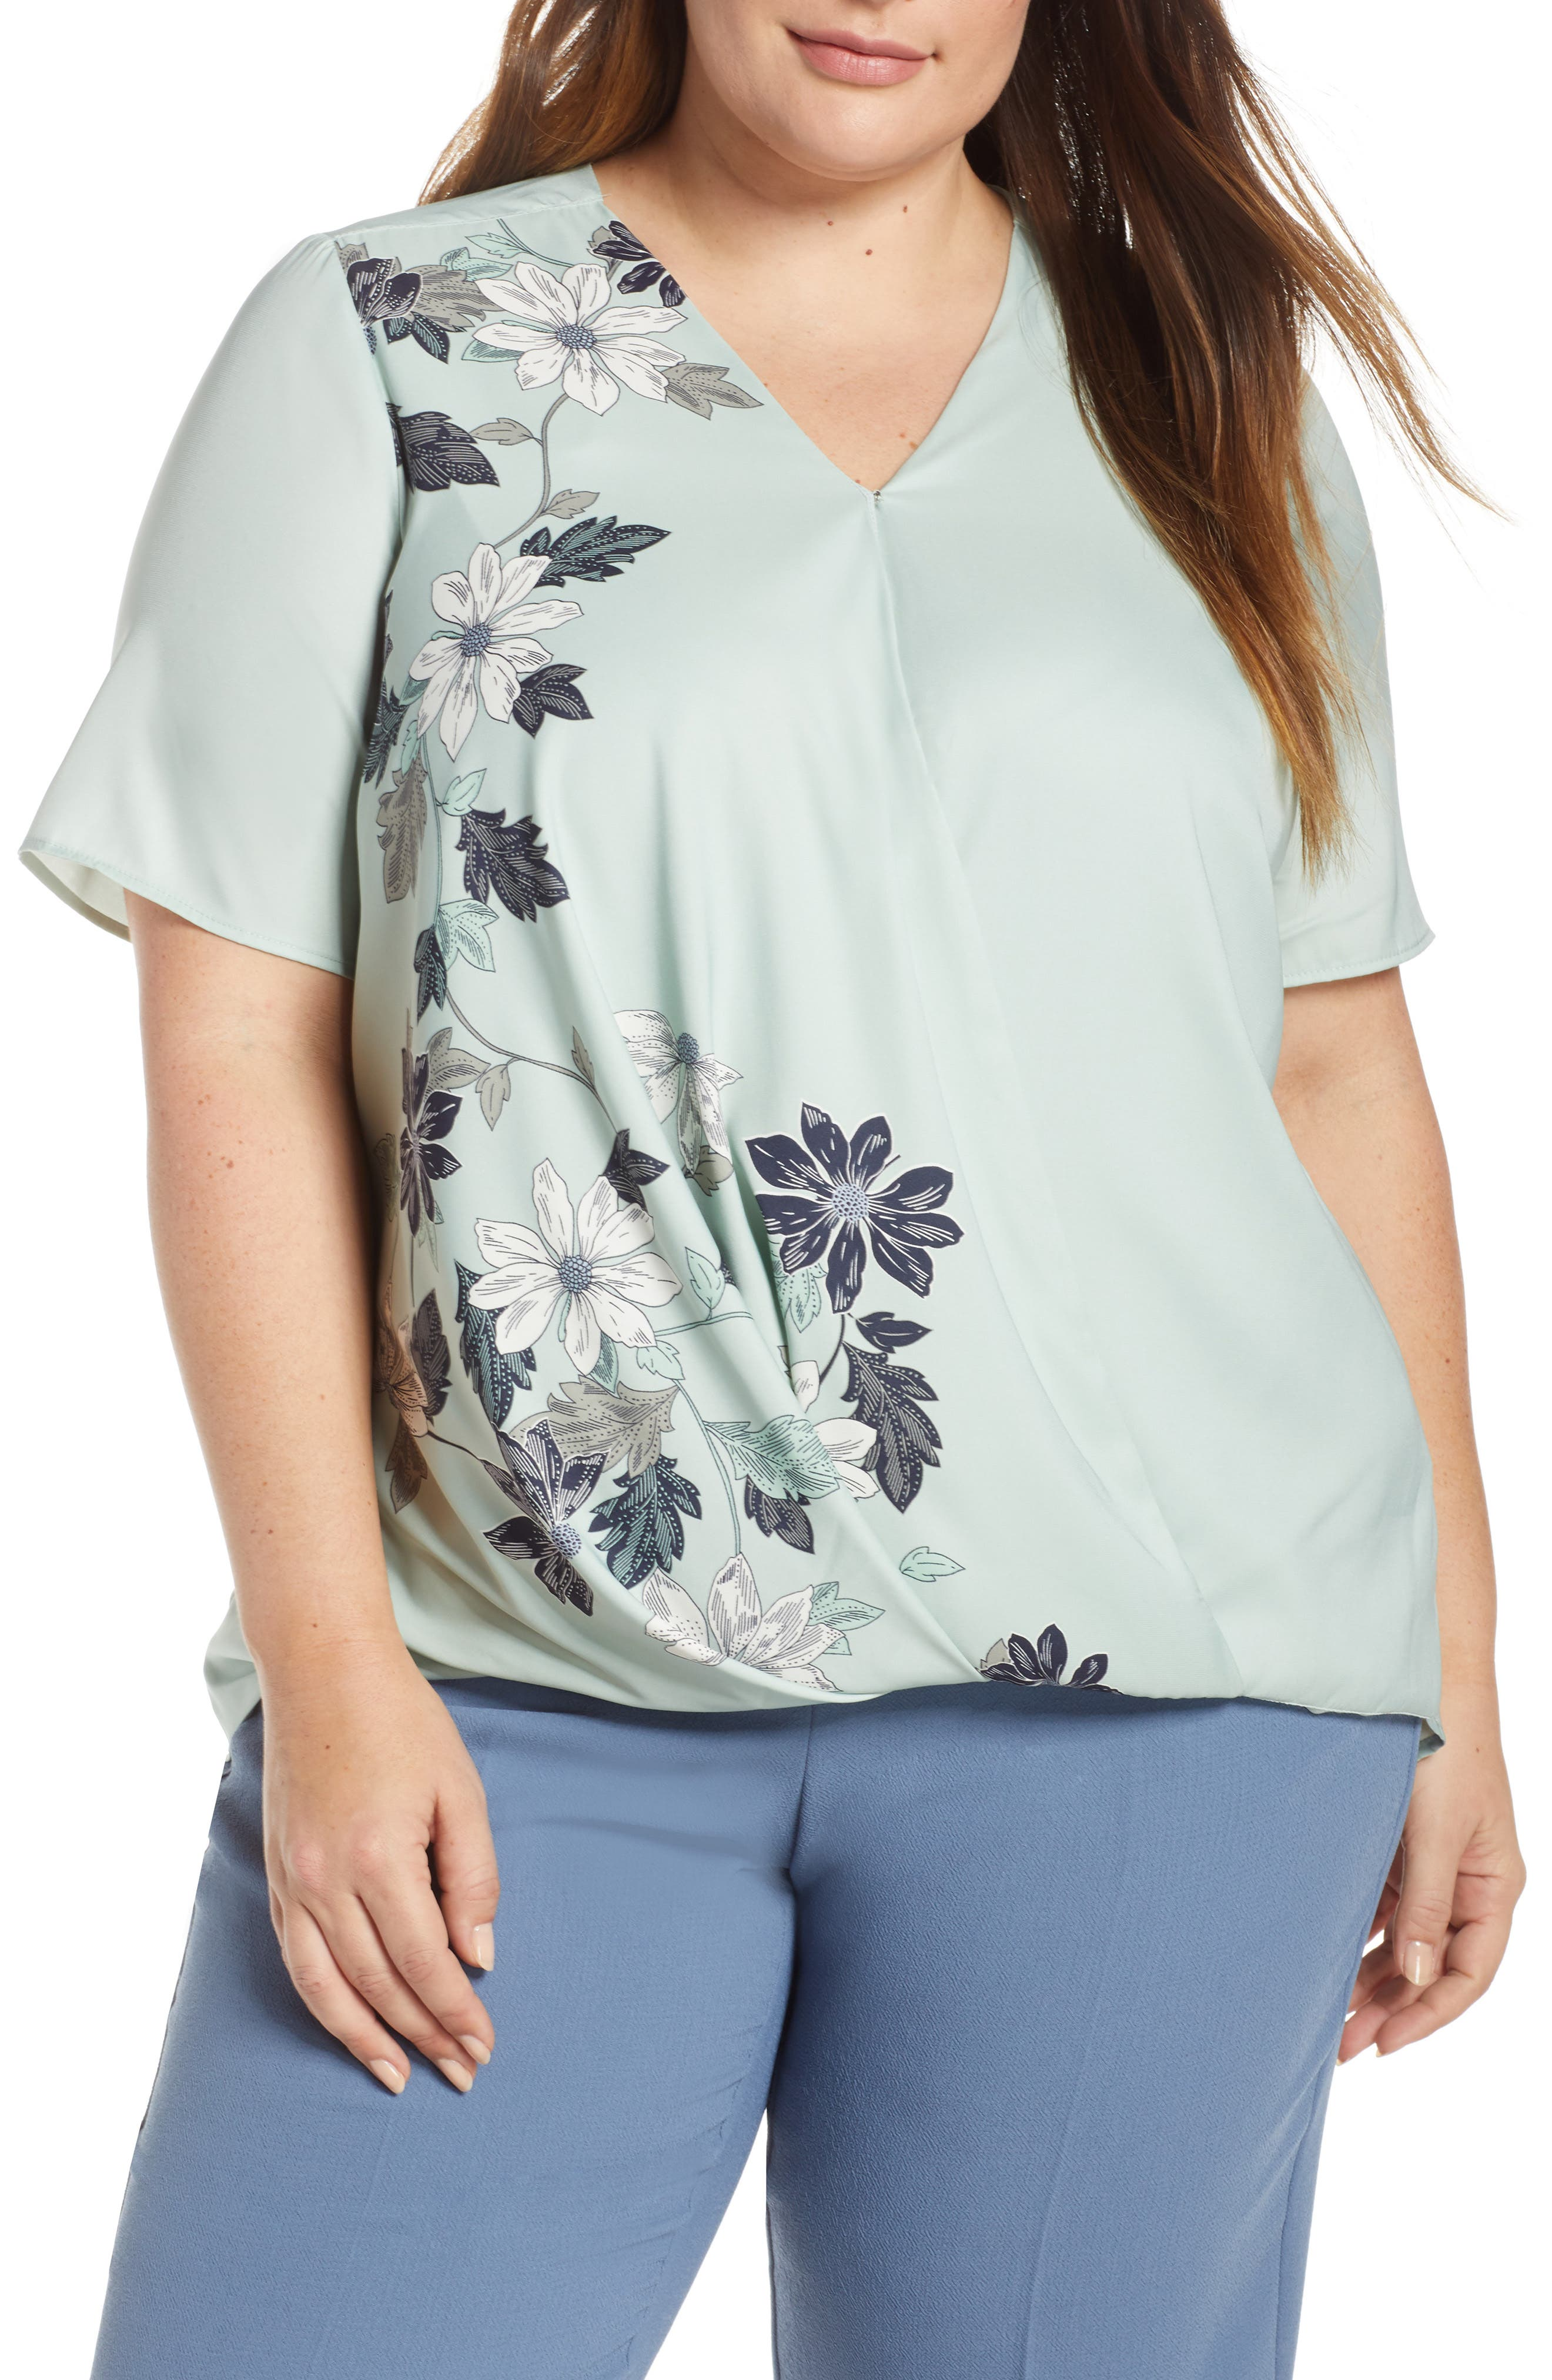 Vince Camuto Tops FLORAL VINES CROSSOVER TOP